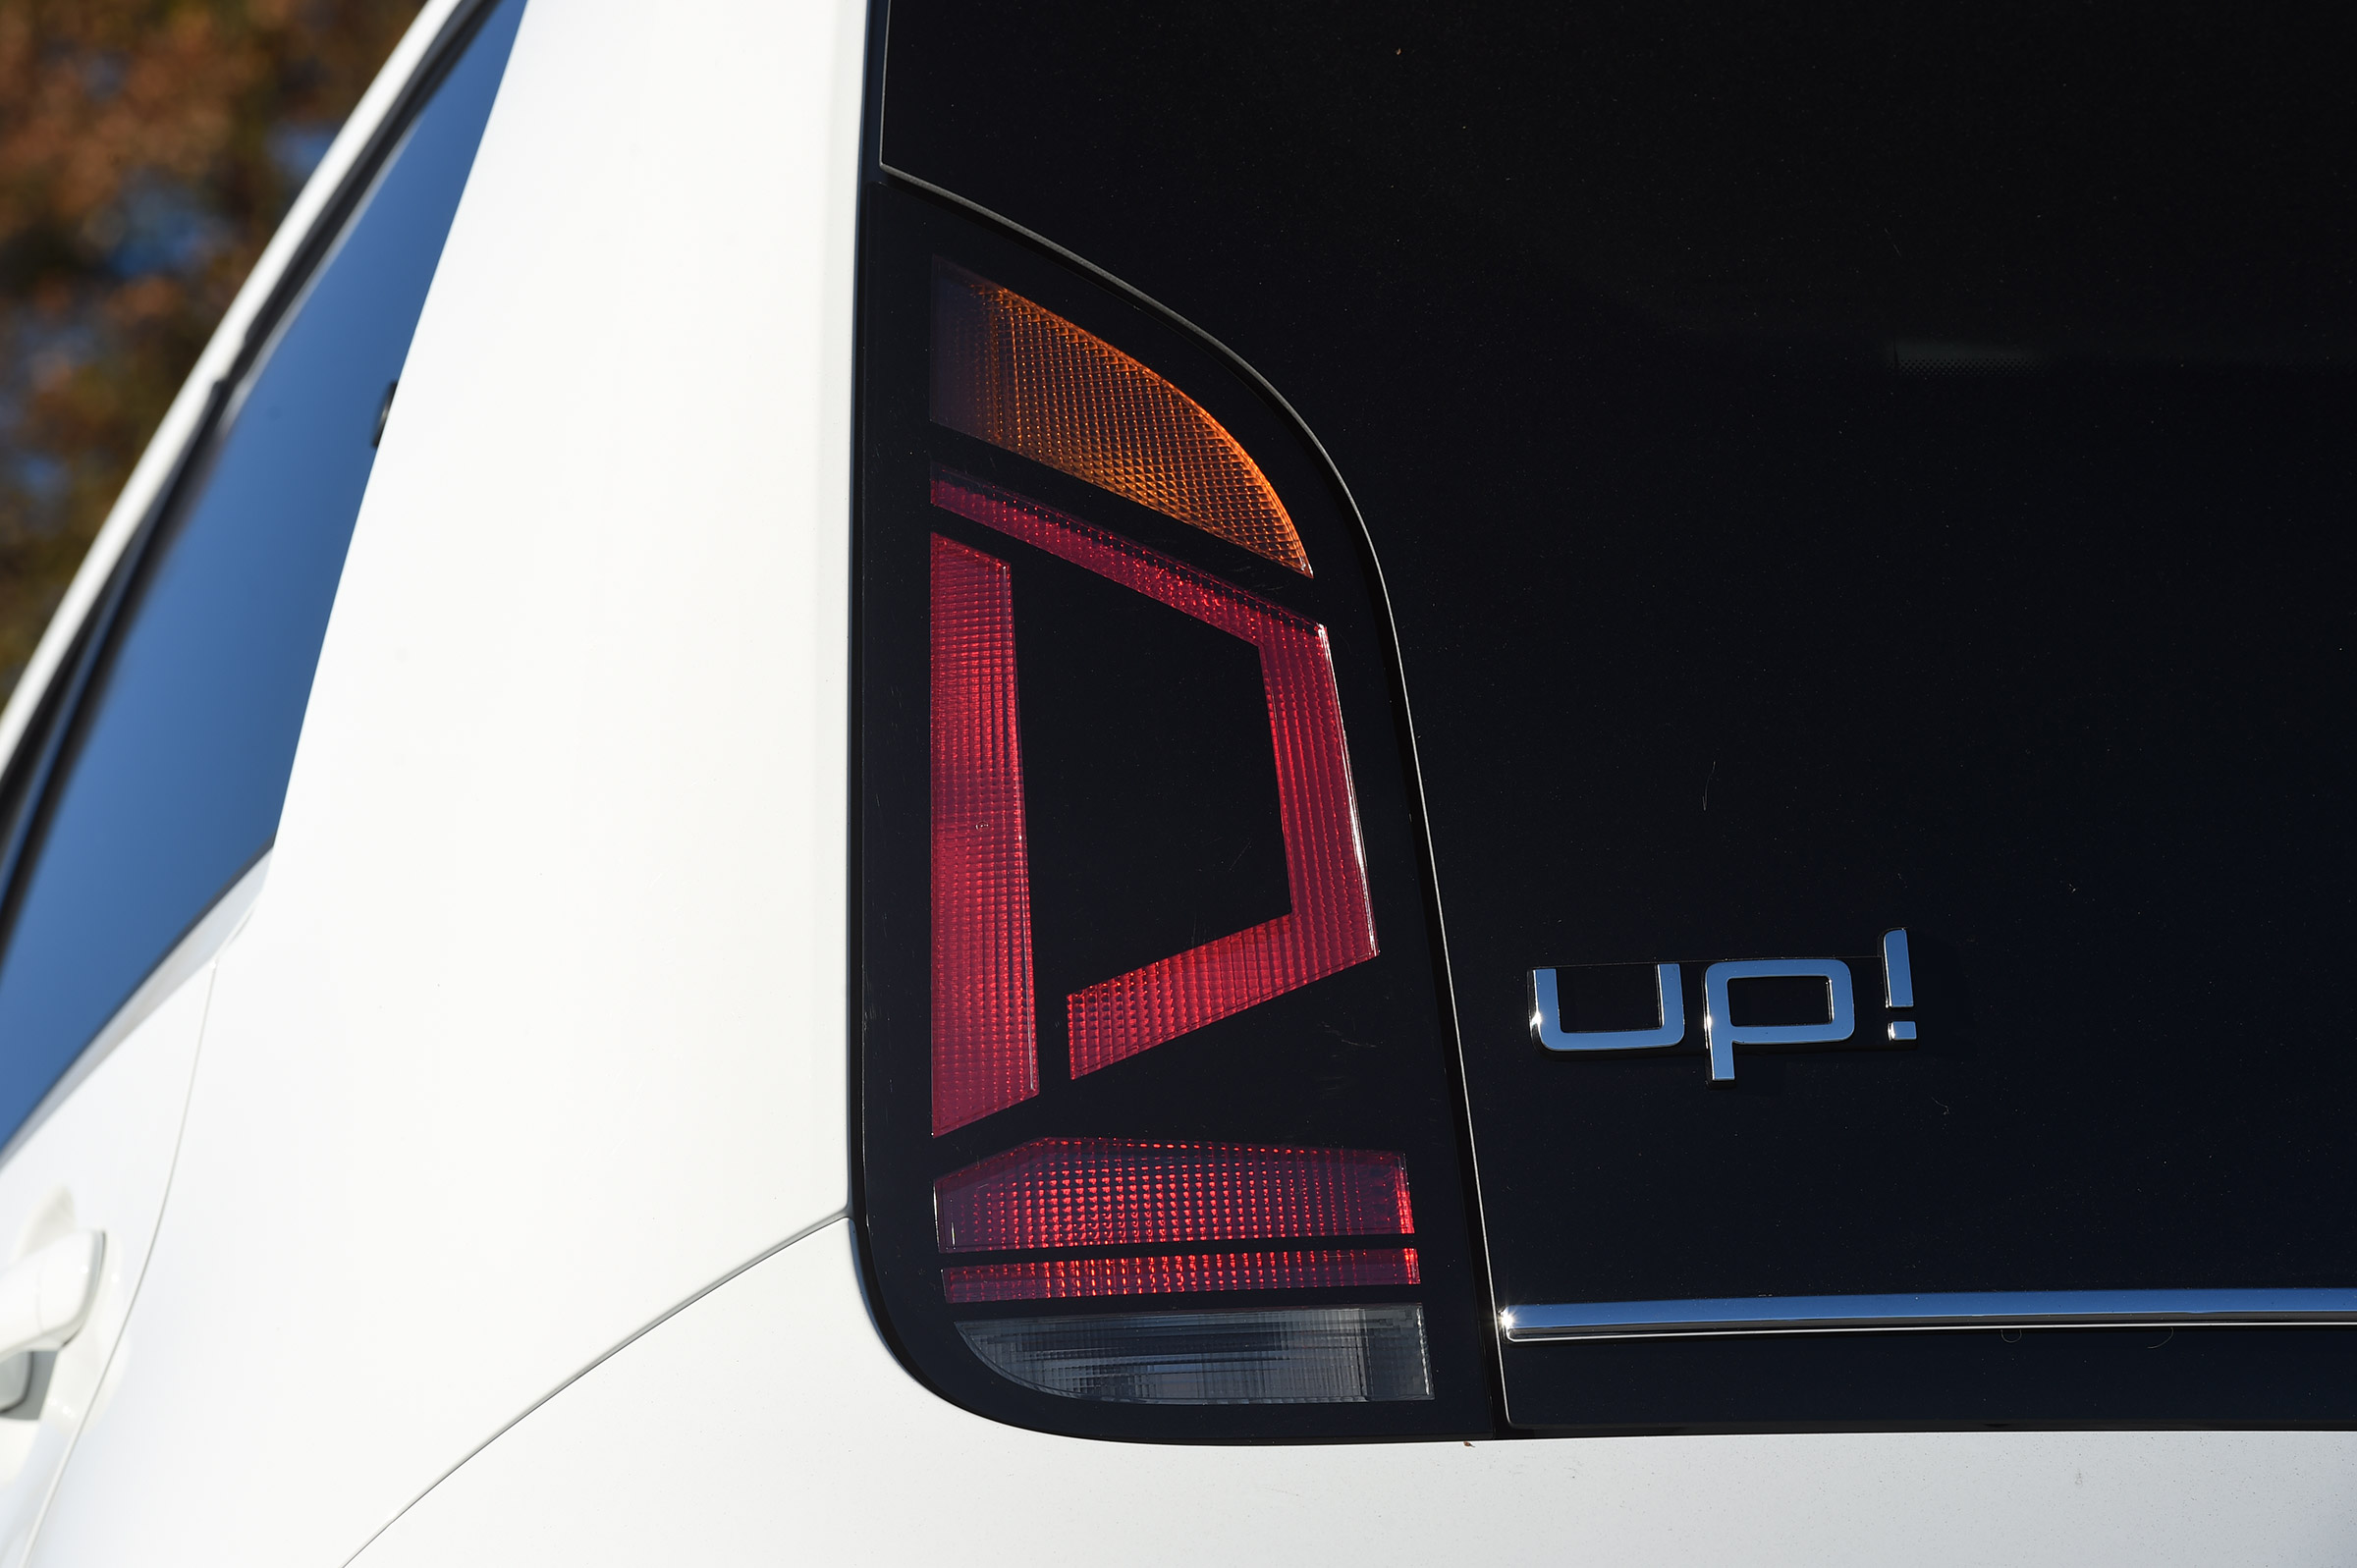 2017 Volkswagen Up Exterior White View Taillight (Photo 5 of 15)